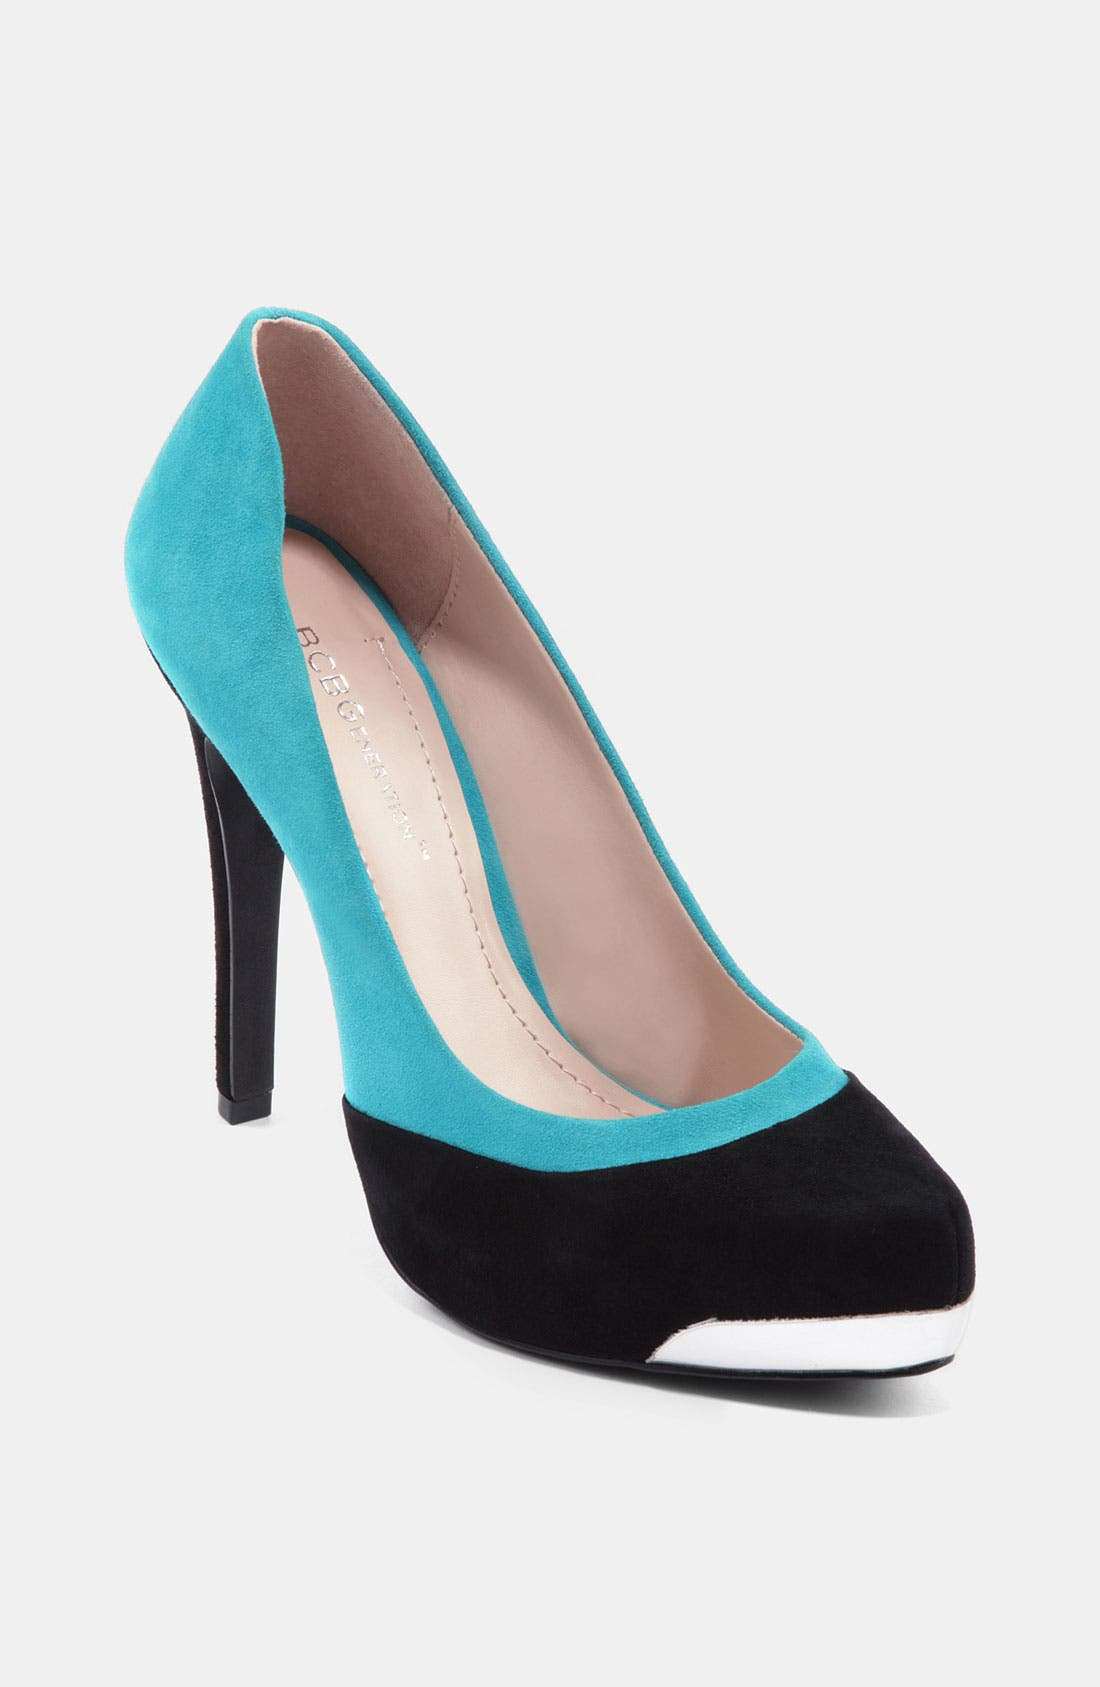 Alternate Image 1 Selected - BCBGeneration 'Pandee' Pump